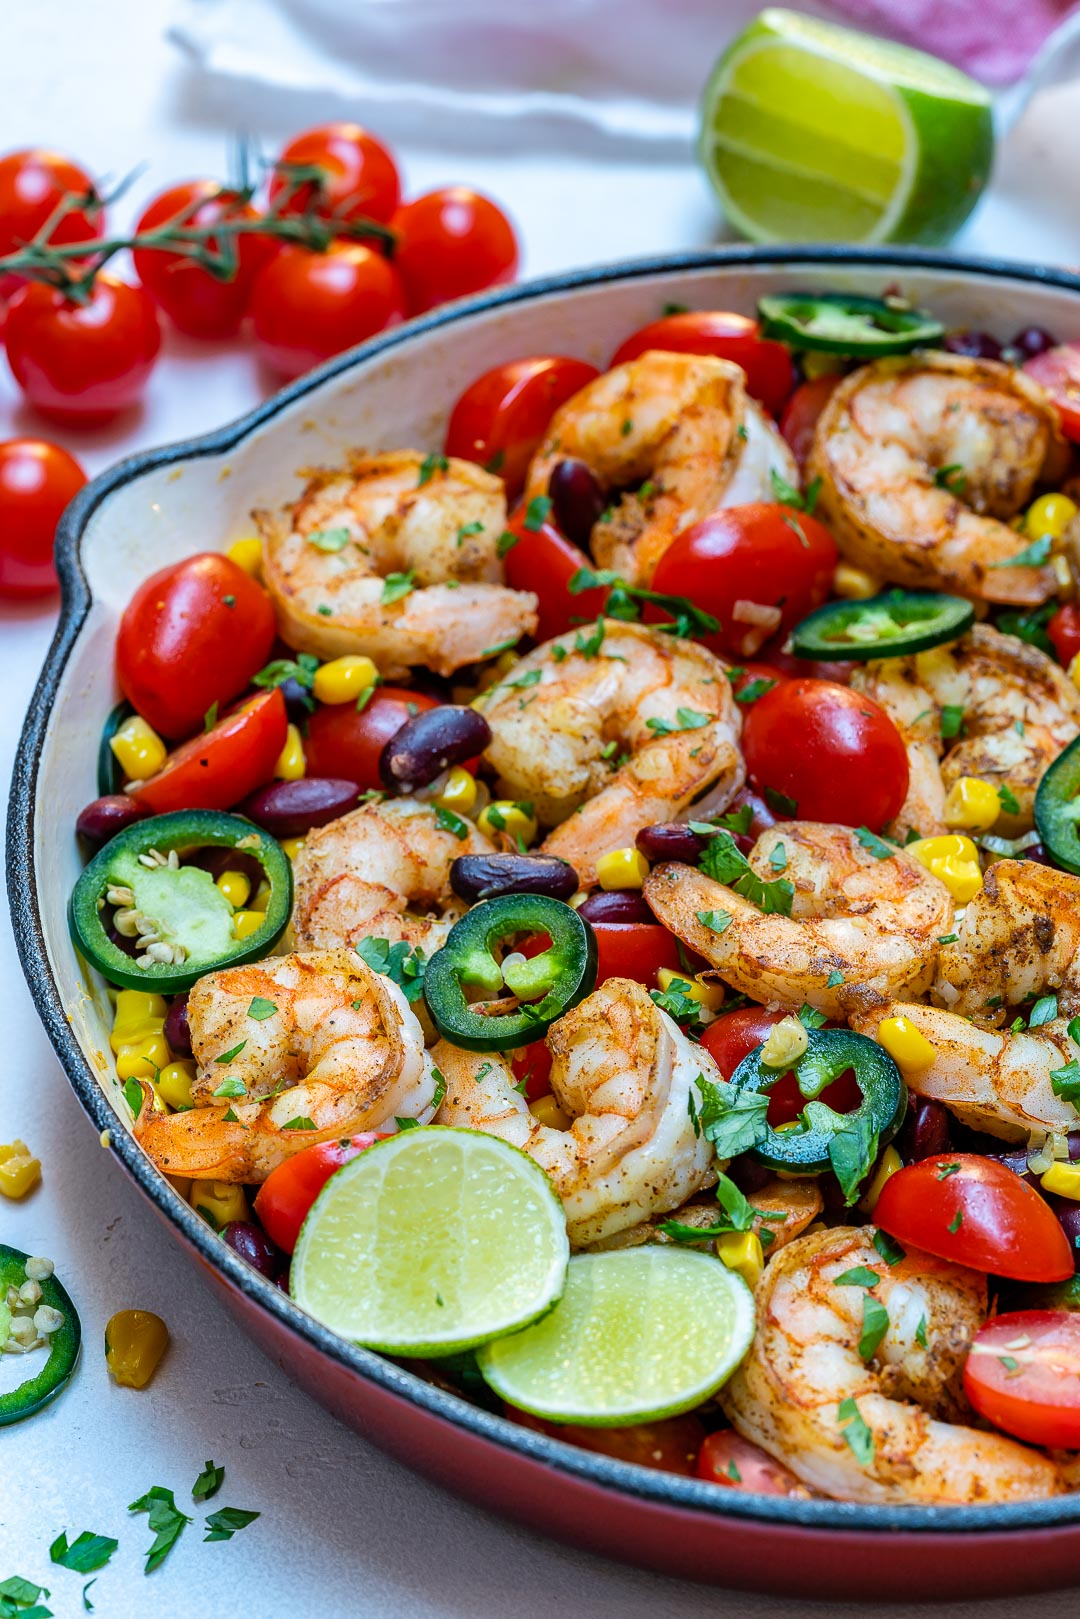 Healthy Spicy Shrimp Skillet